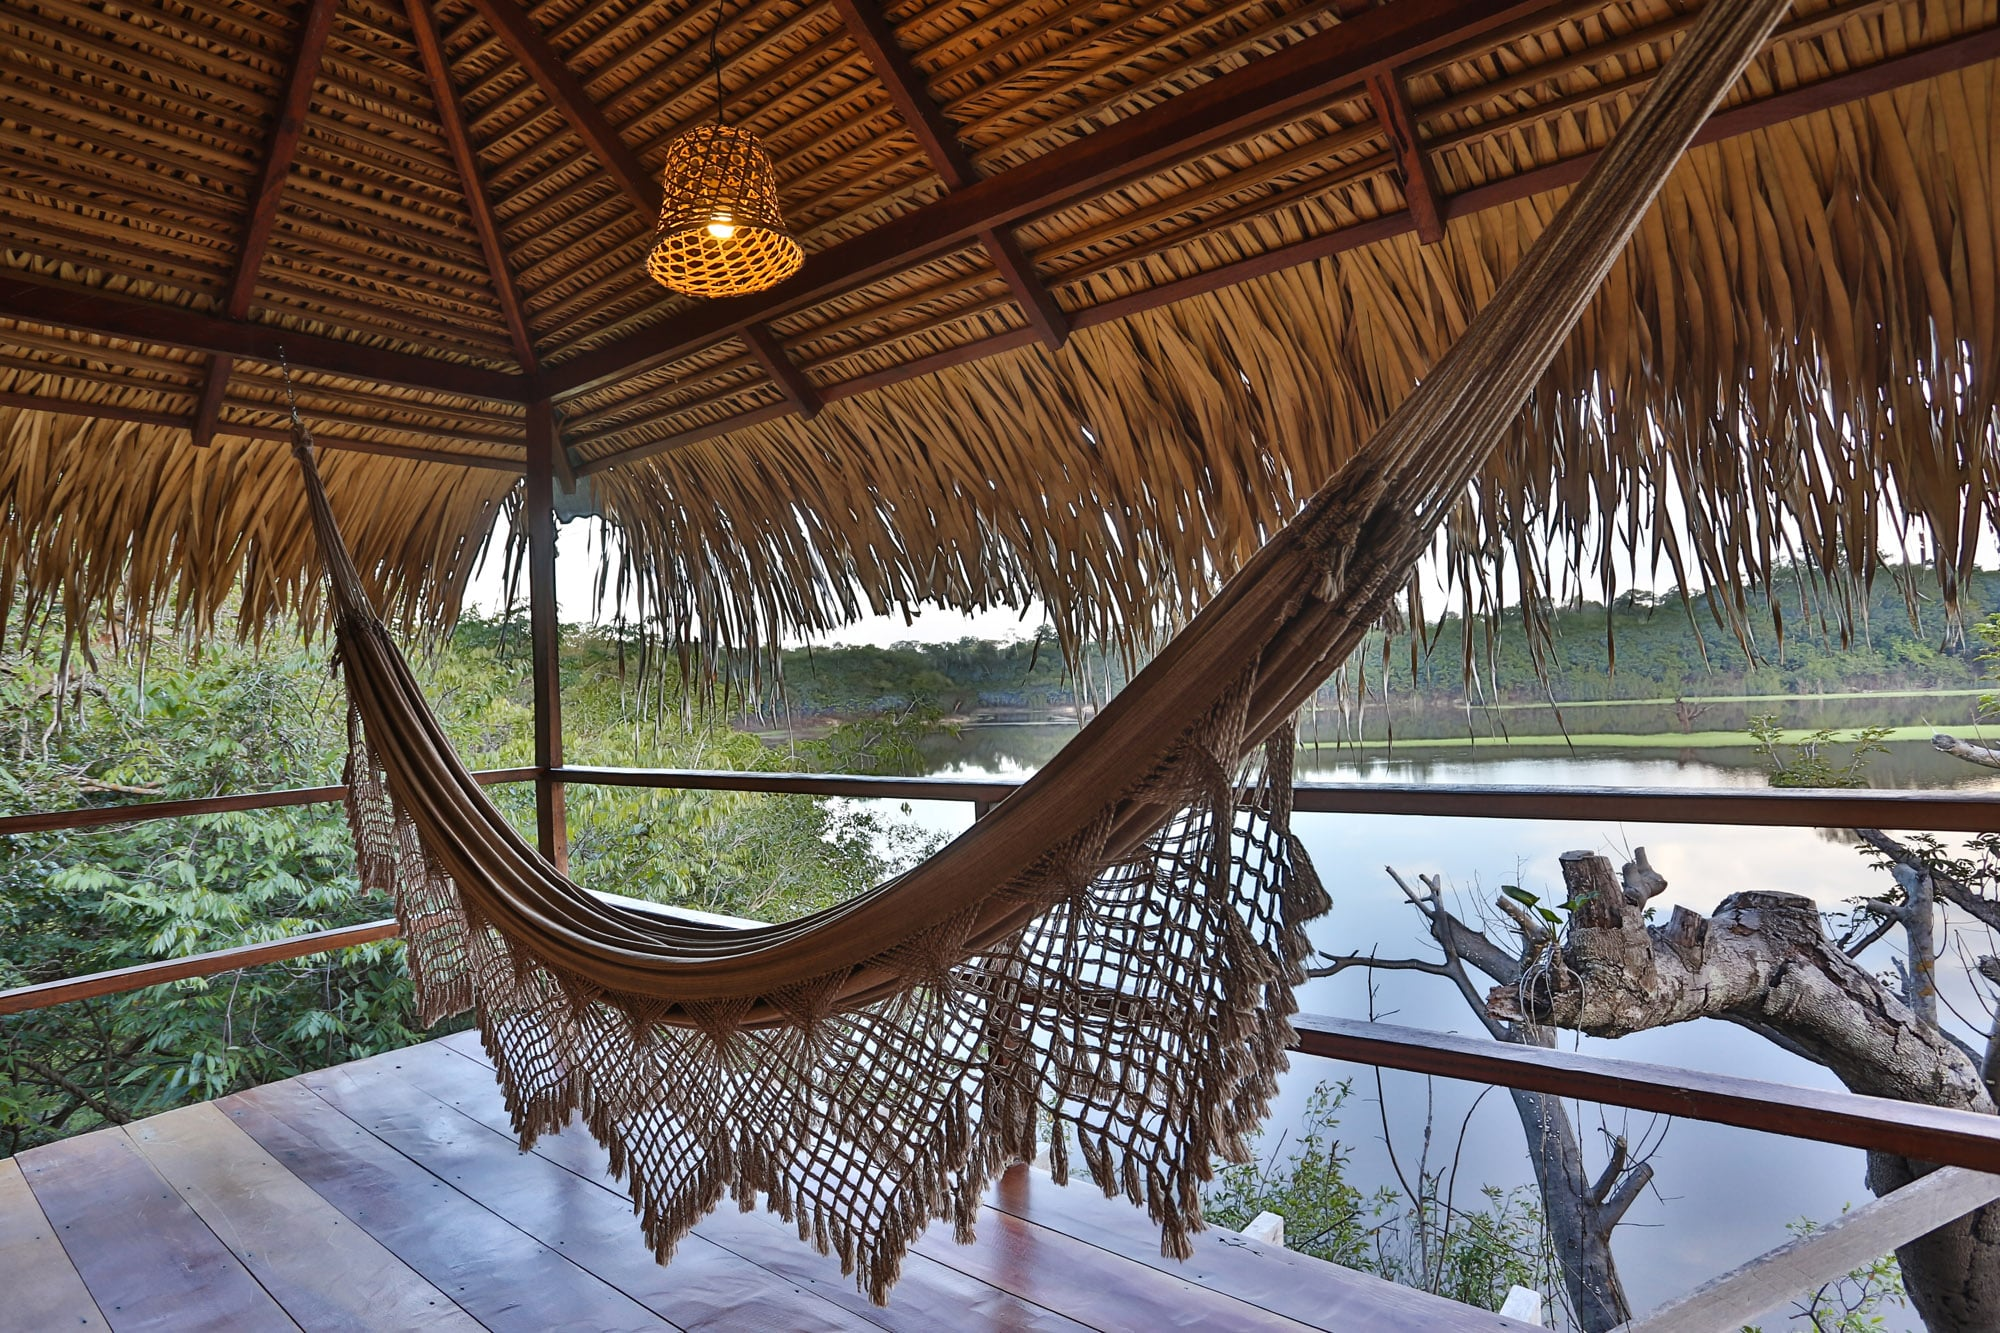 Relaxing at Juma Lodge in the Amazon